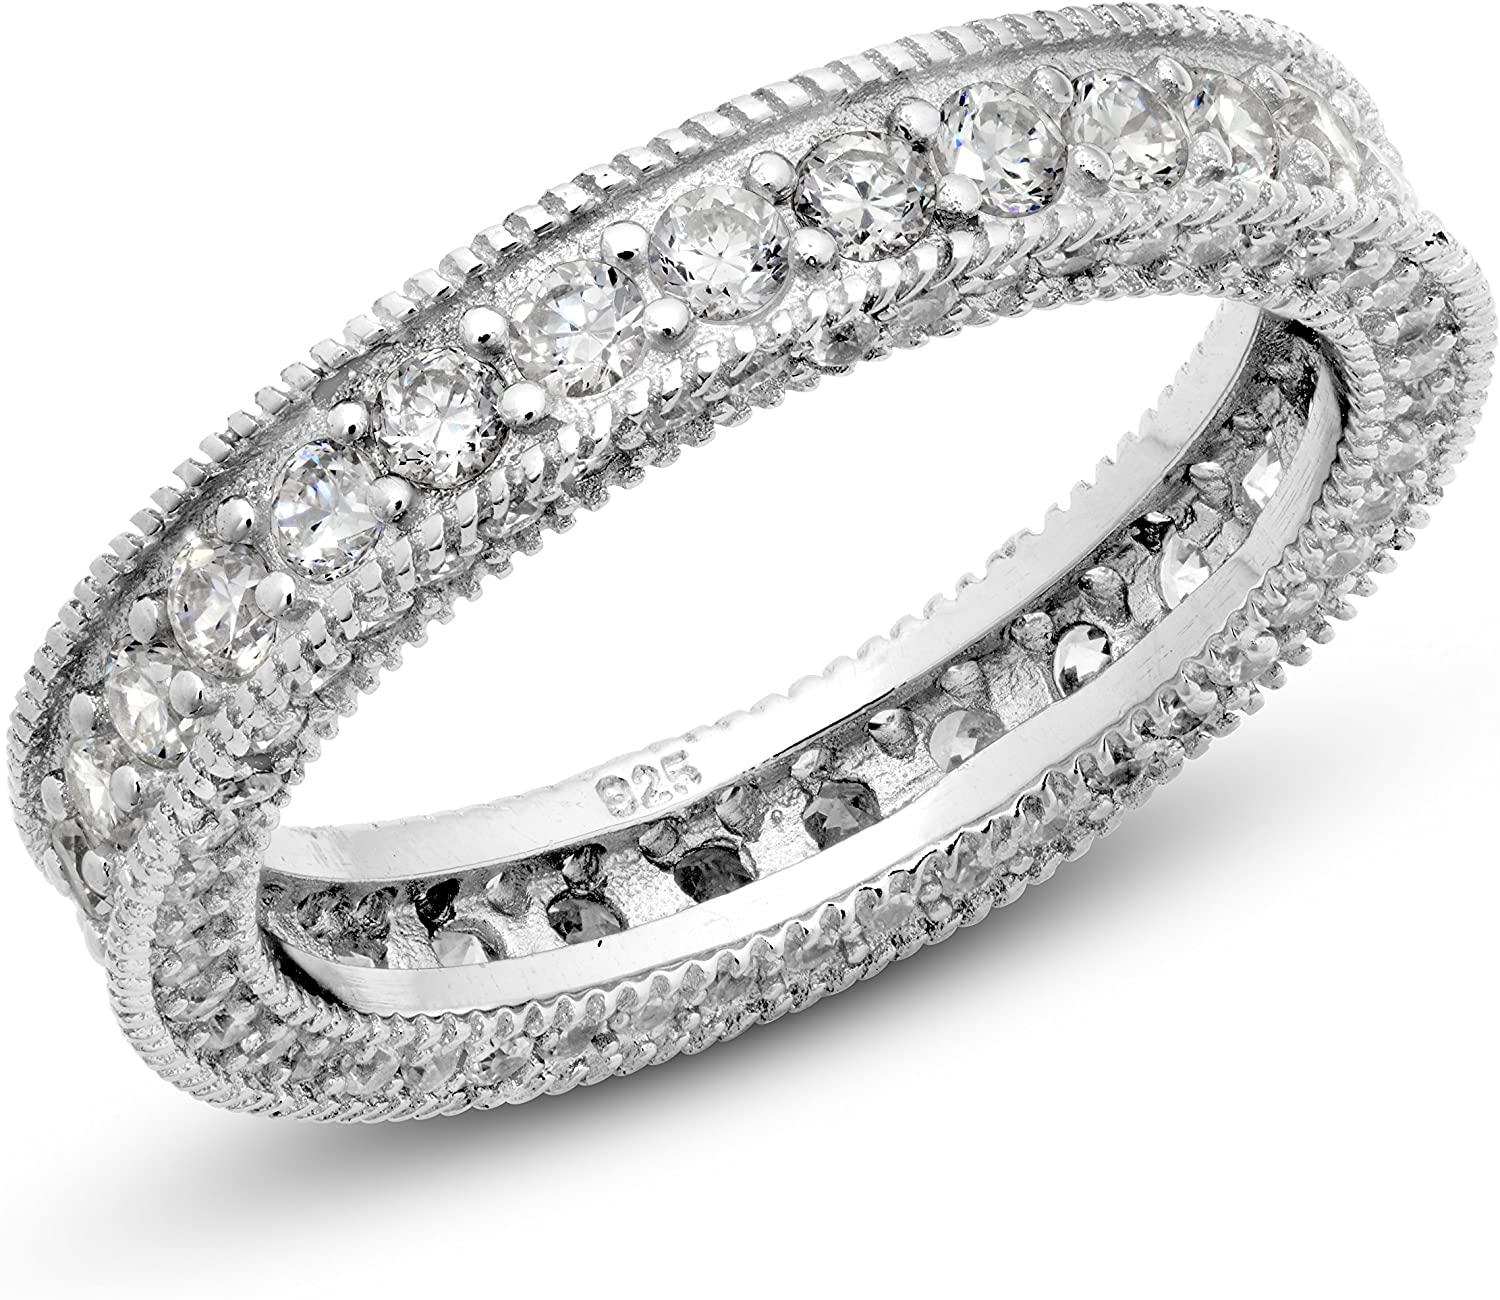 Stylish Sterling Silver Ring Genuine Solid Stamped 925 With 2.5mm Cubic Zirconia